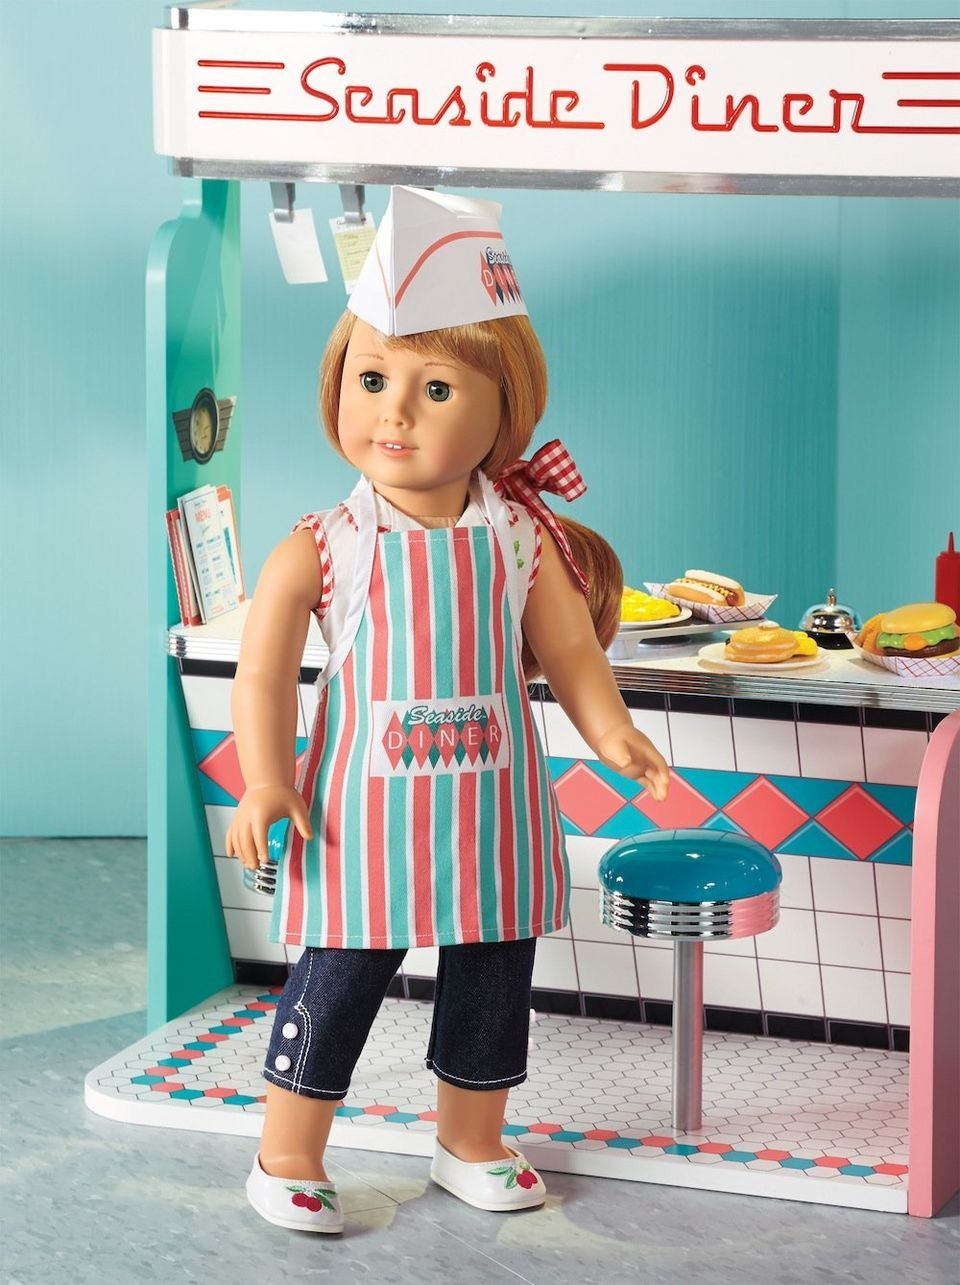 American Girl introduces new 1950s doll, Maryellen Larkin, with events around country | cleveland.com